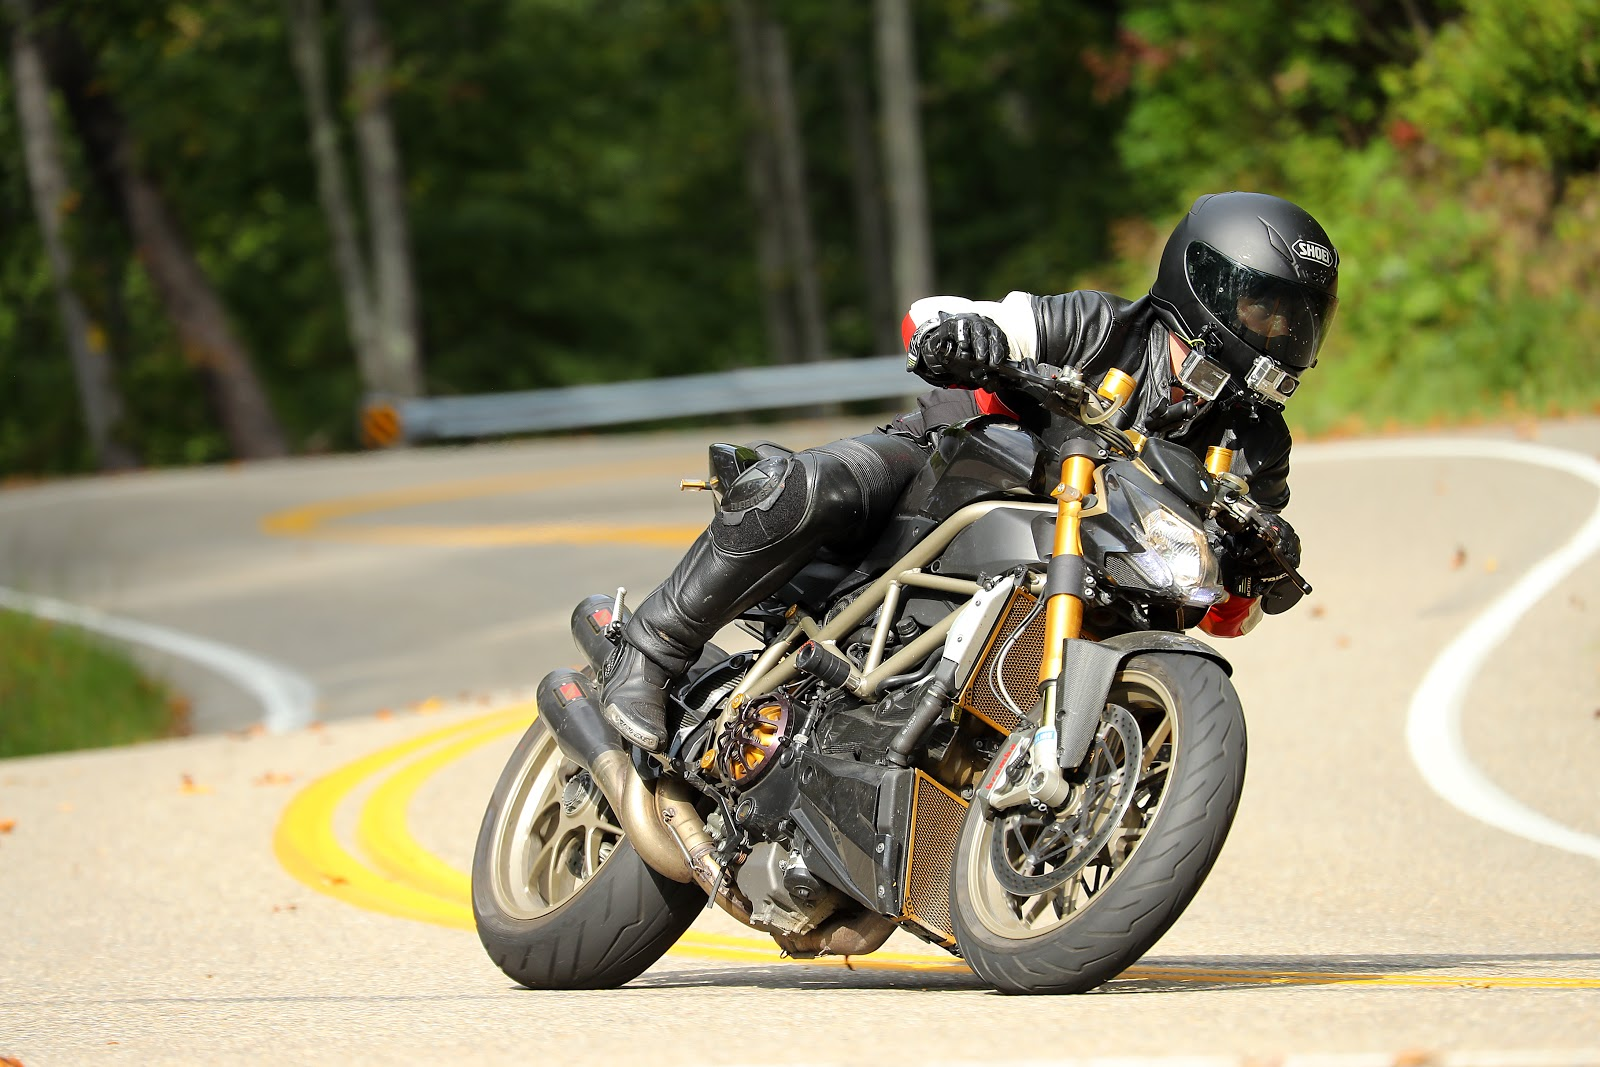 Tigh Loughhead rides Ducati Streetfighter Motorcycles at the Tail of the Dragon North Carolina